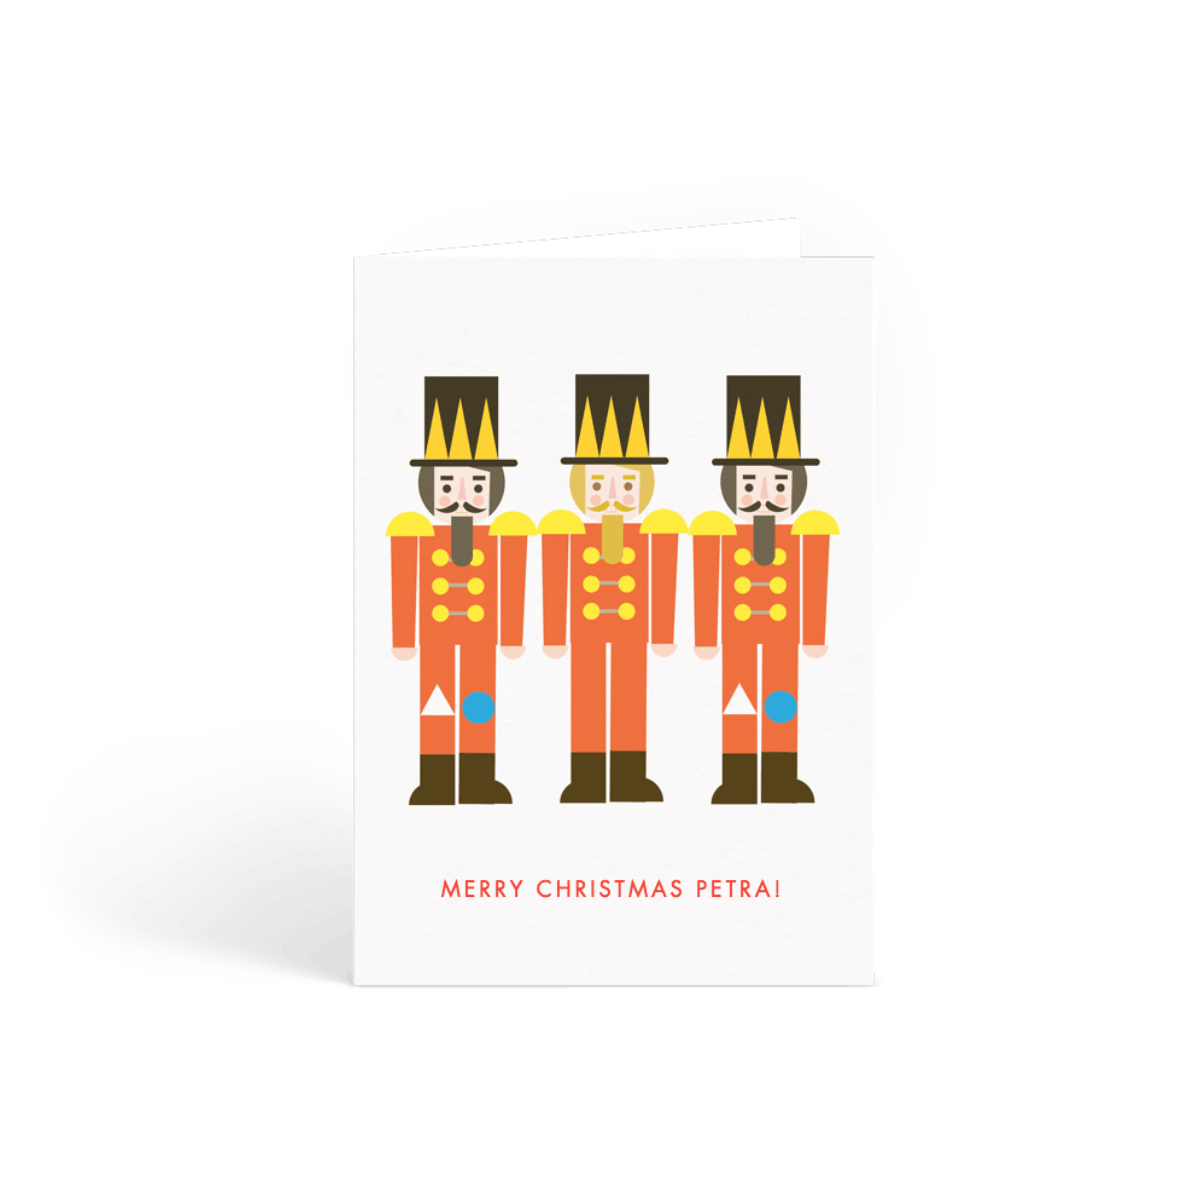 Https%3a%2f%2fwww.papier.com%2fproduct image%2f31215%2f2%2fchristmas nutcrackers 7840 front 1570702699.png?ixlib=rb 1.1